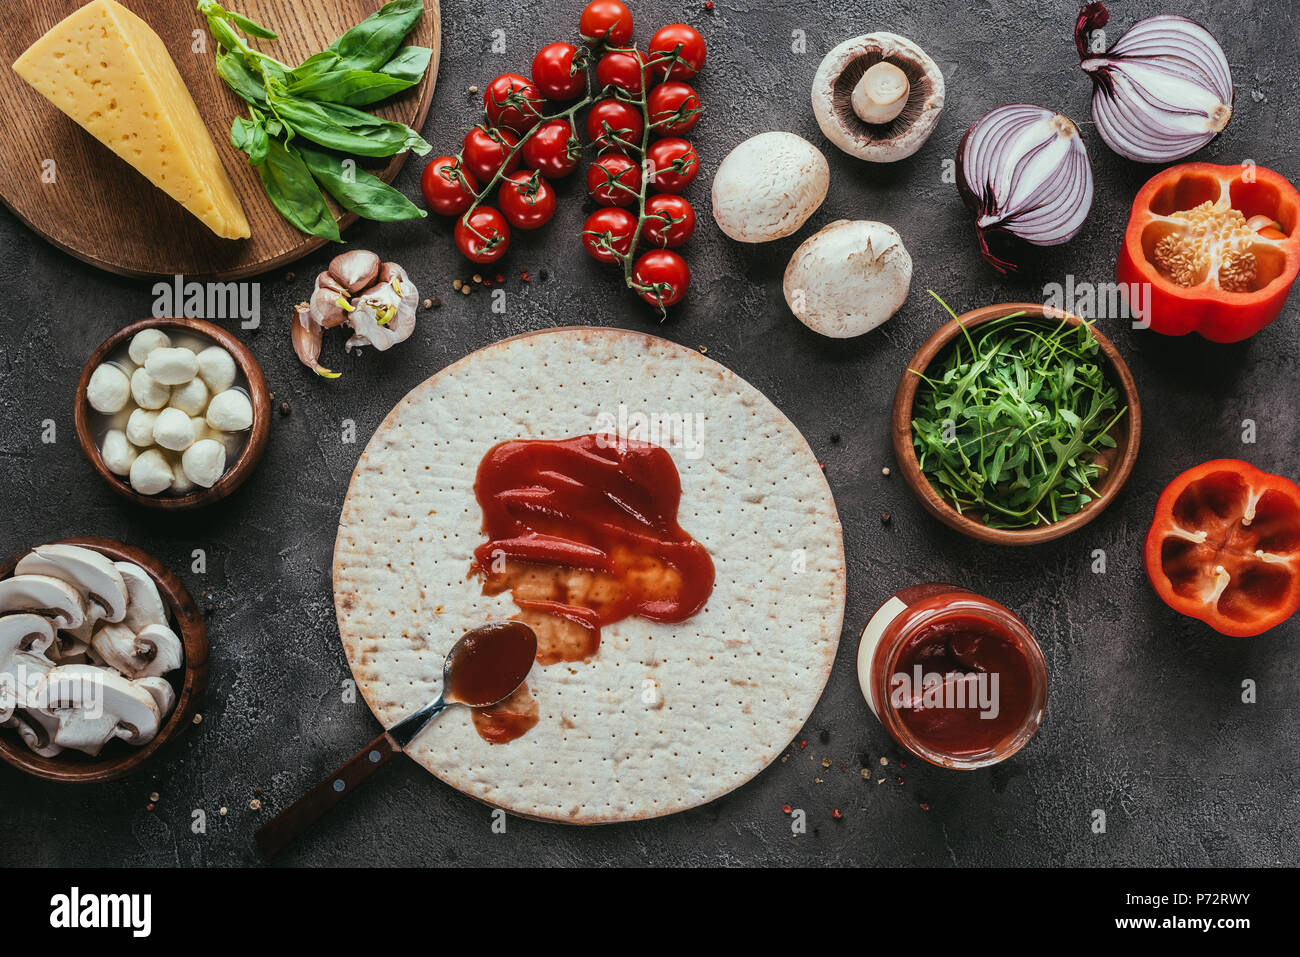 top view of pizza dough with poured ketchup and various vegetables on concrete table - Stock Image